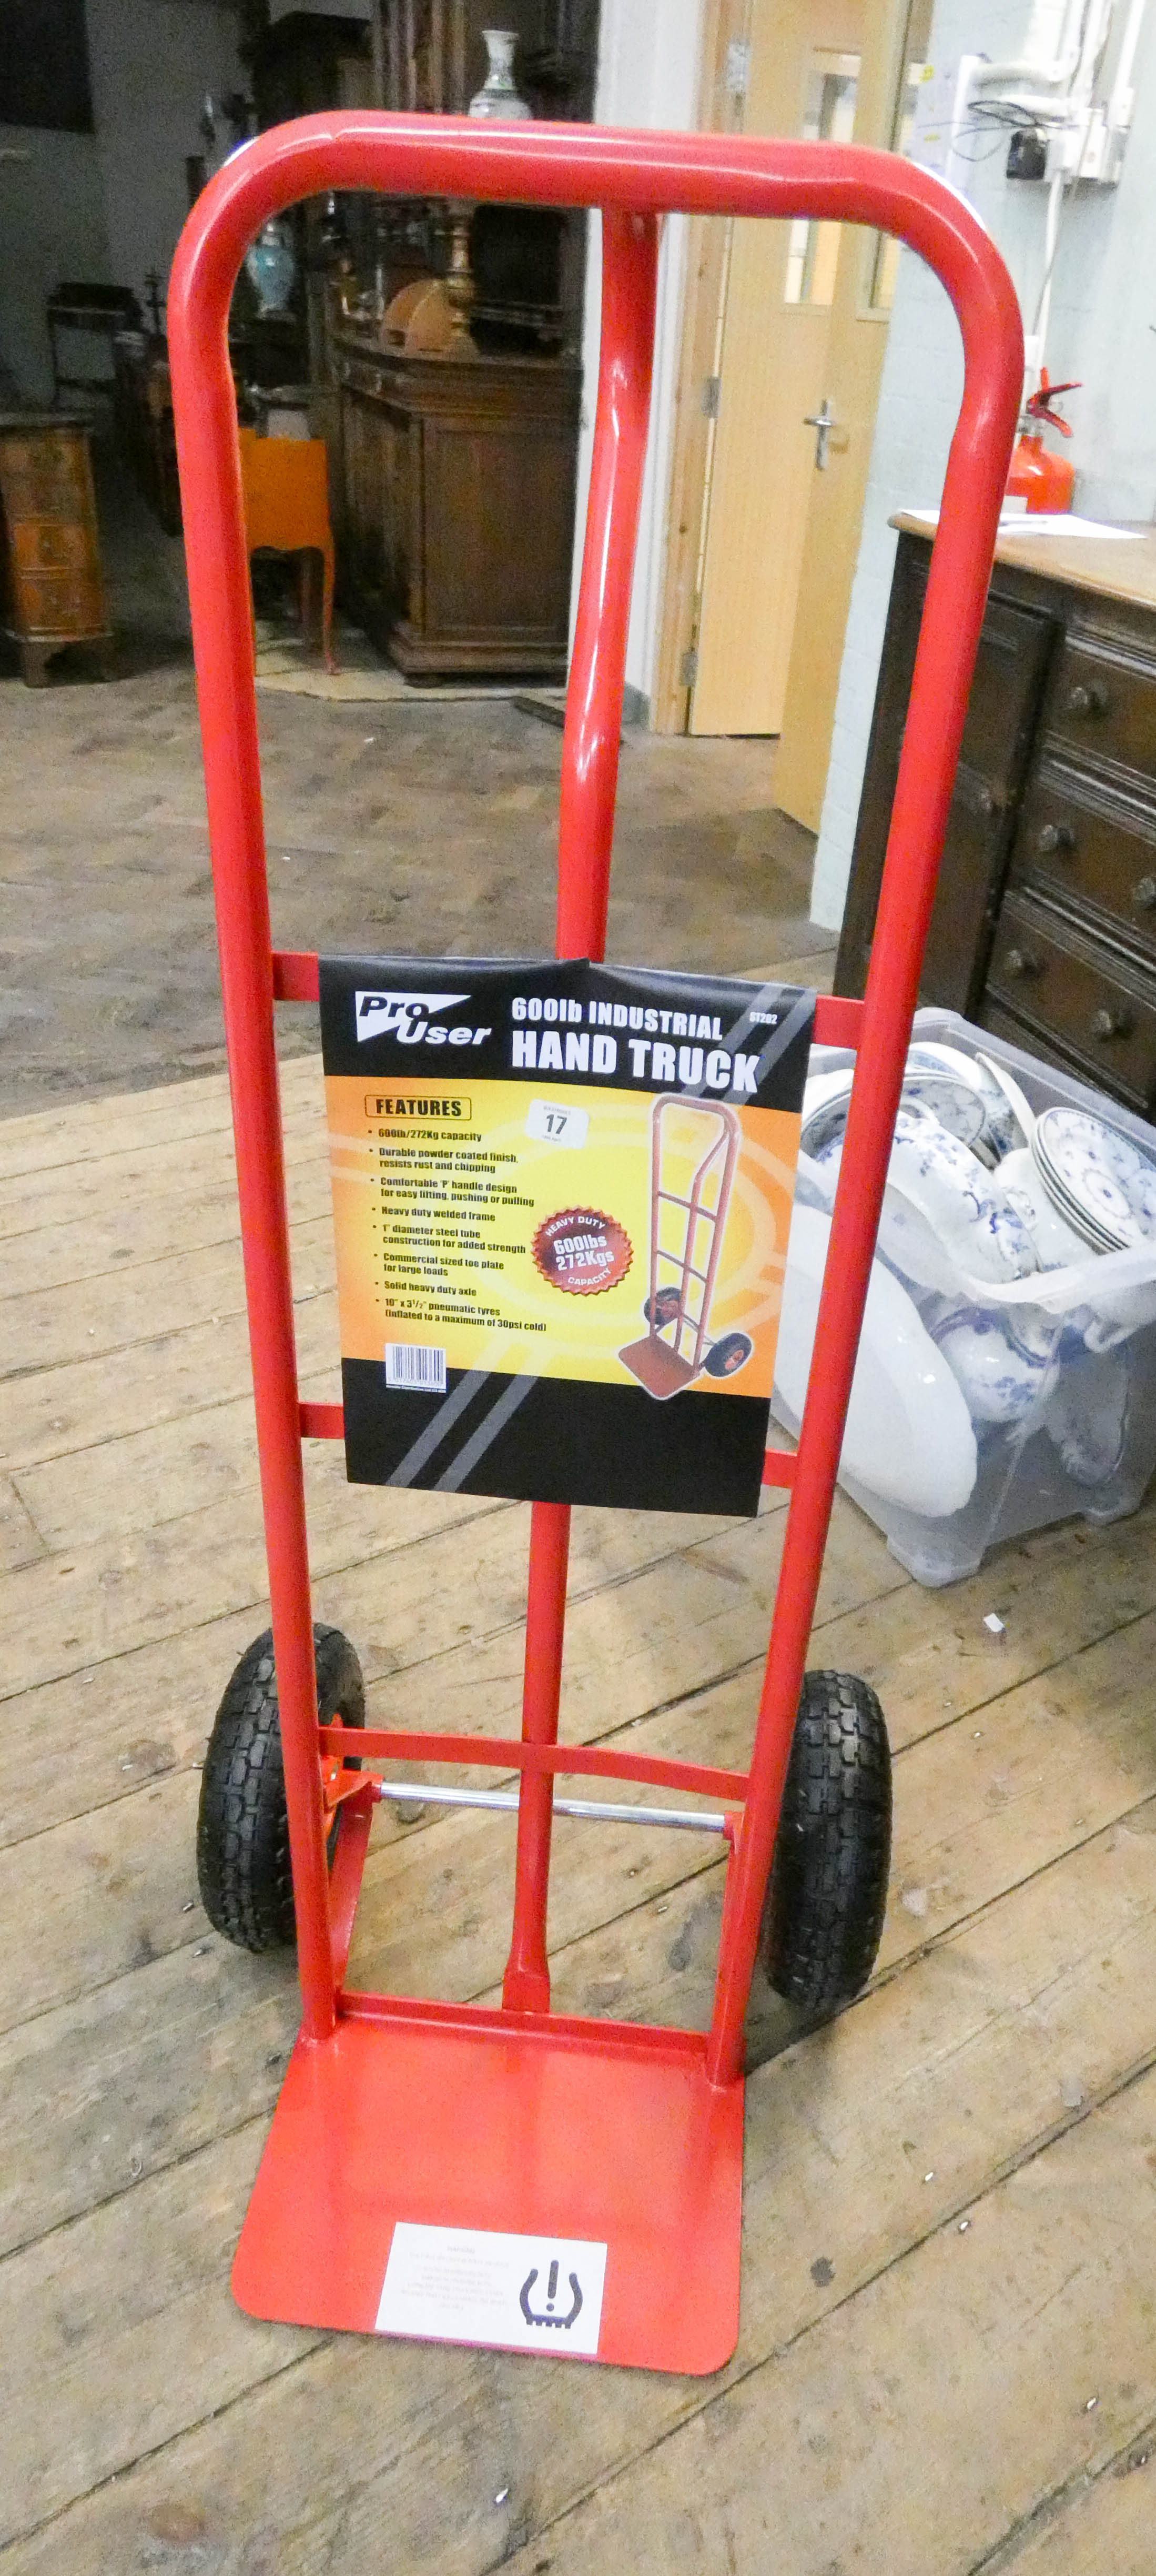 Lot 17 - A new 600lbs work load industrial sack truck with pneumatic tires